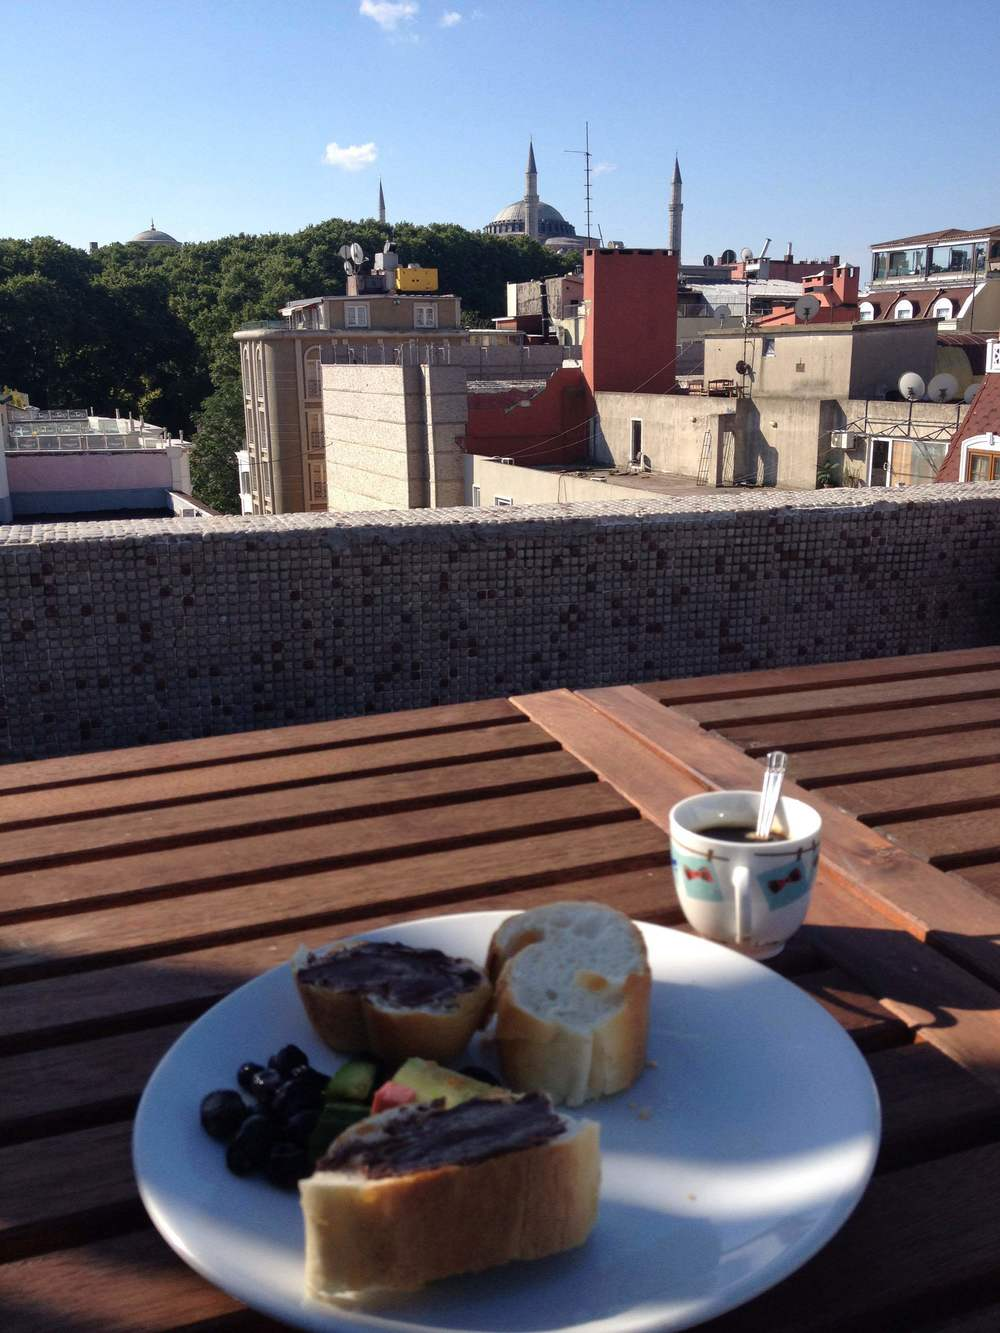 One last breakfast in the shadow of Hagia Sophia